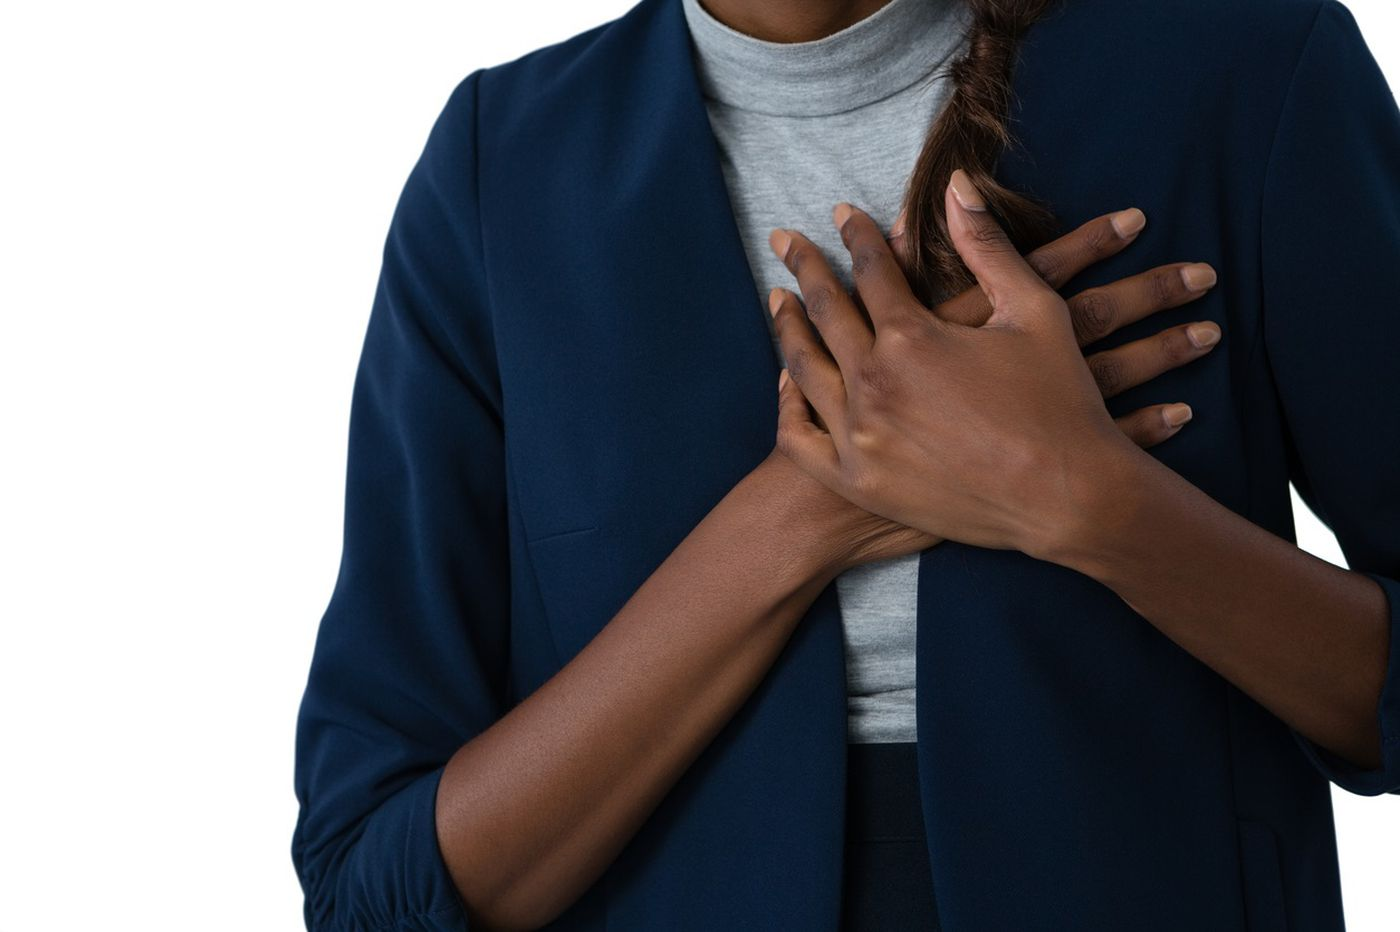 Medical mystery: An unexpected – and ironic – cause of chest pain